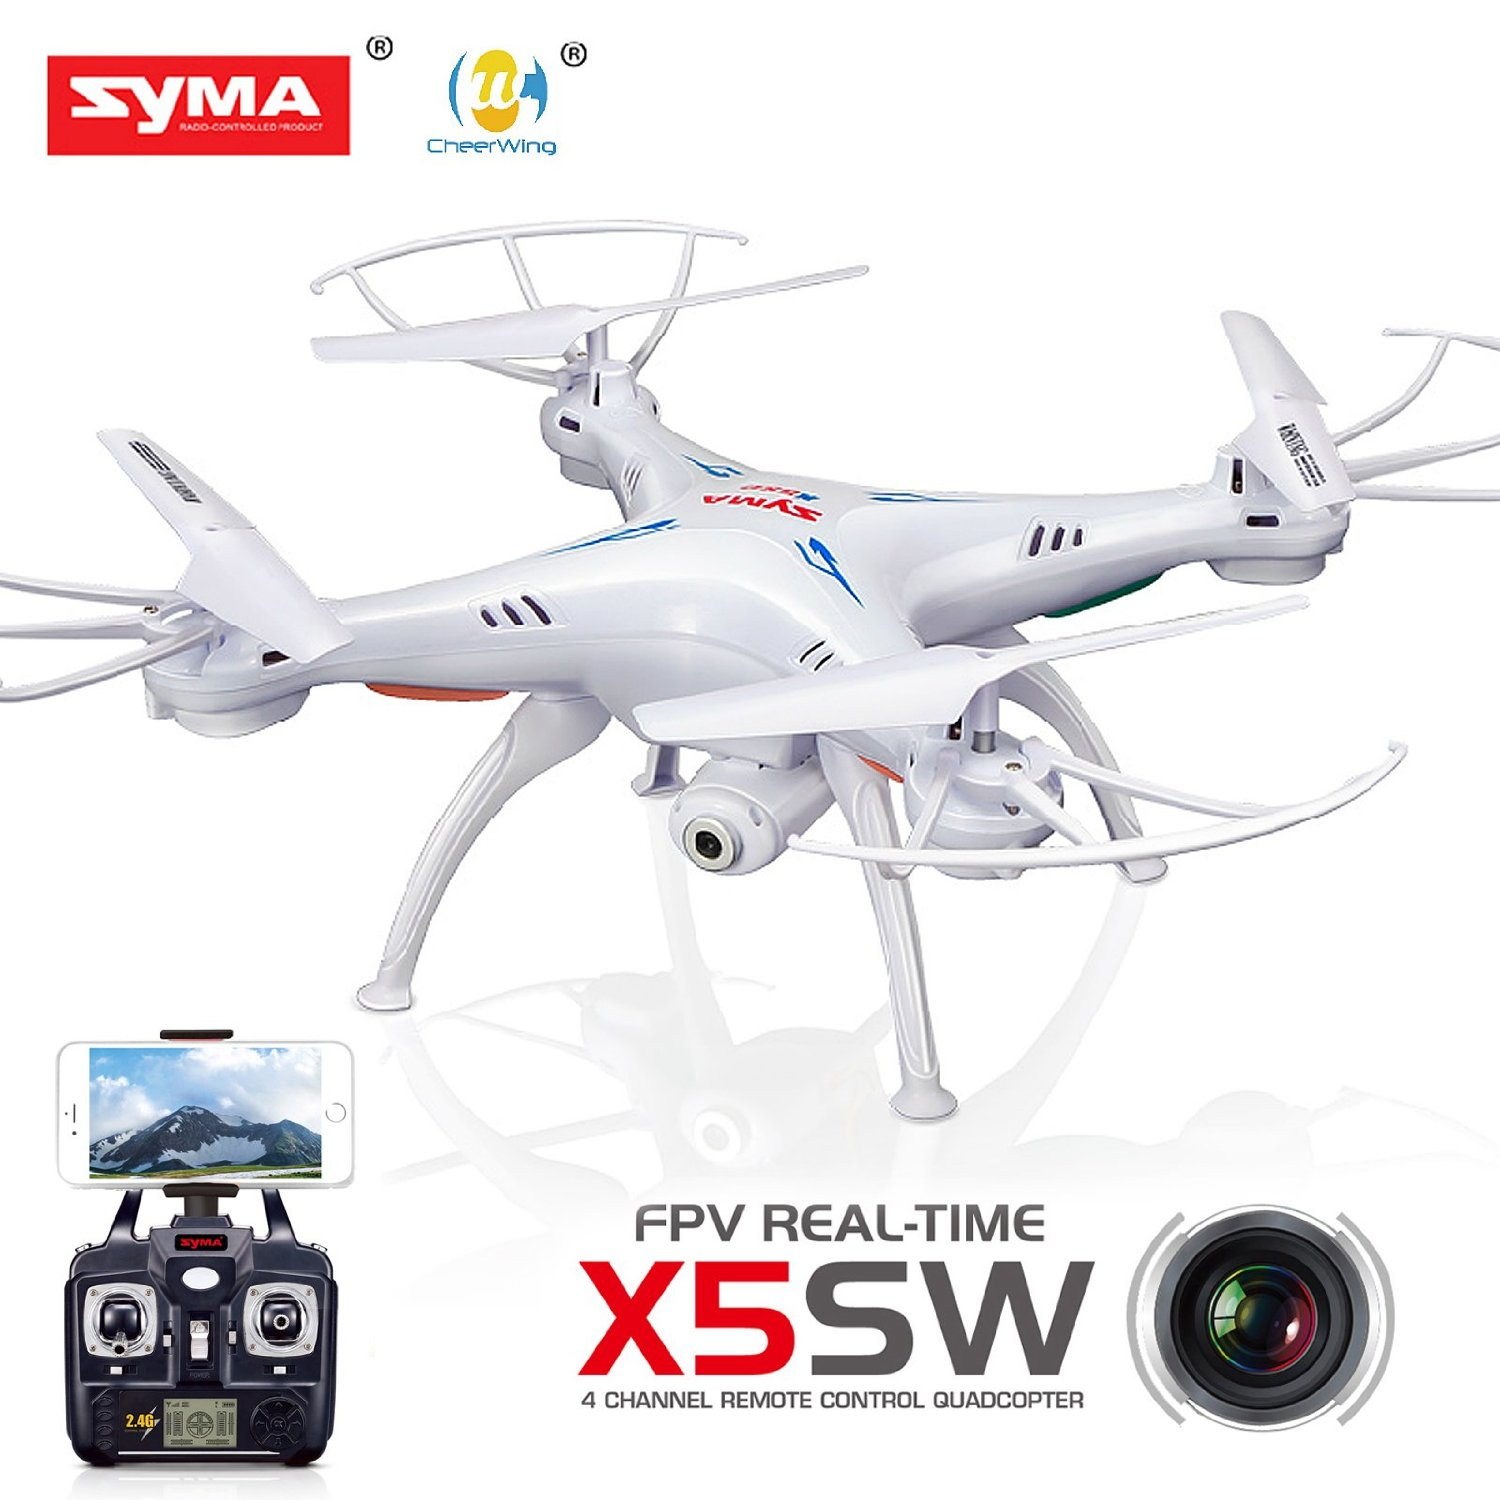 drone quad with Syma X5sw Explorers2 Drone Fpv Hd Wifi Camera 2 4ghz 4ch 6 Axis Gyro With Headless Mode on Dji cp pt 000731 spark quadcopter alpine white in addition Wingcopter Fixed Wing Airplane Quadcopter Fusion Vtol Uav besides 537193 Testing Dji Phantom 3 Pro Quadcopter further Syma X5sw Explorers2 Drone Fpv Hd Wifi Camera 2 4ghz 4ch 6 Axis Gyro With Headless Mode further Dji Matrice 210 R  G Quadcopter Cp Hy 000065 Dji.